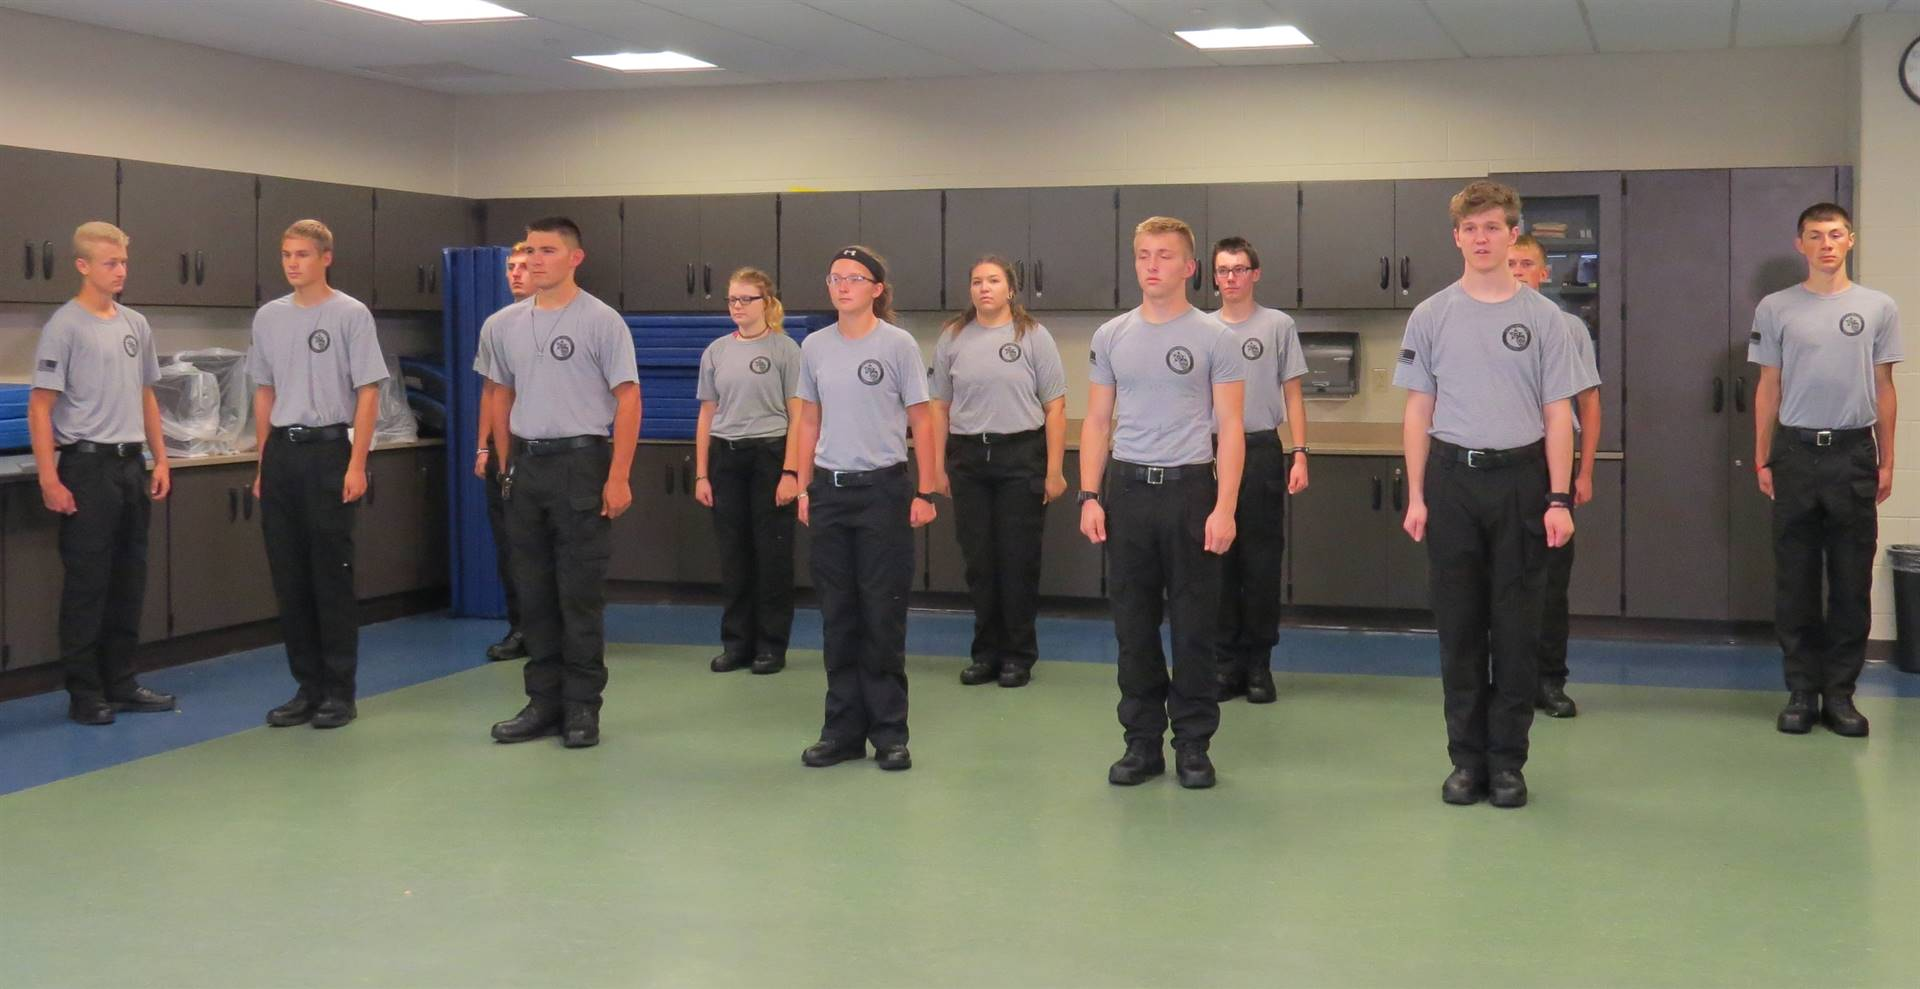 Male & female Criminal Justice students standing at attention